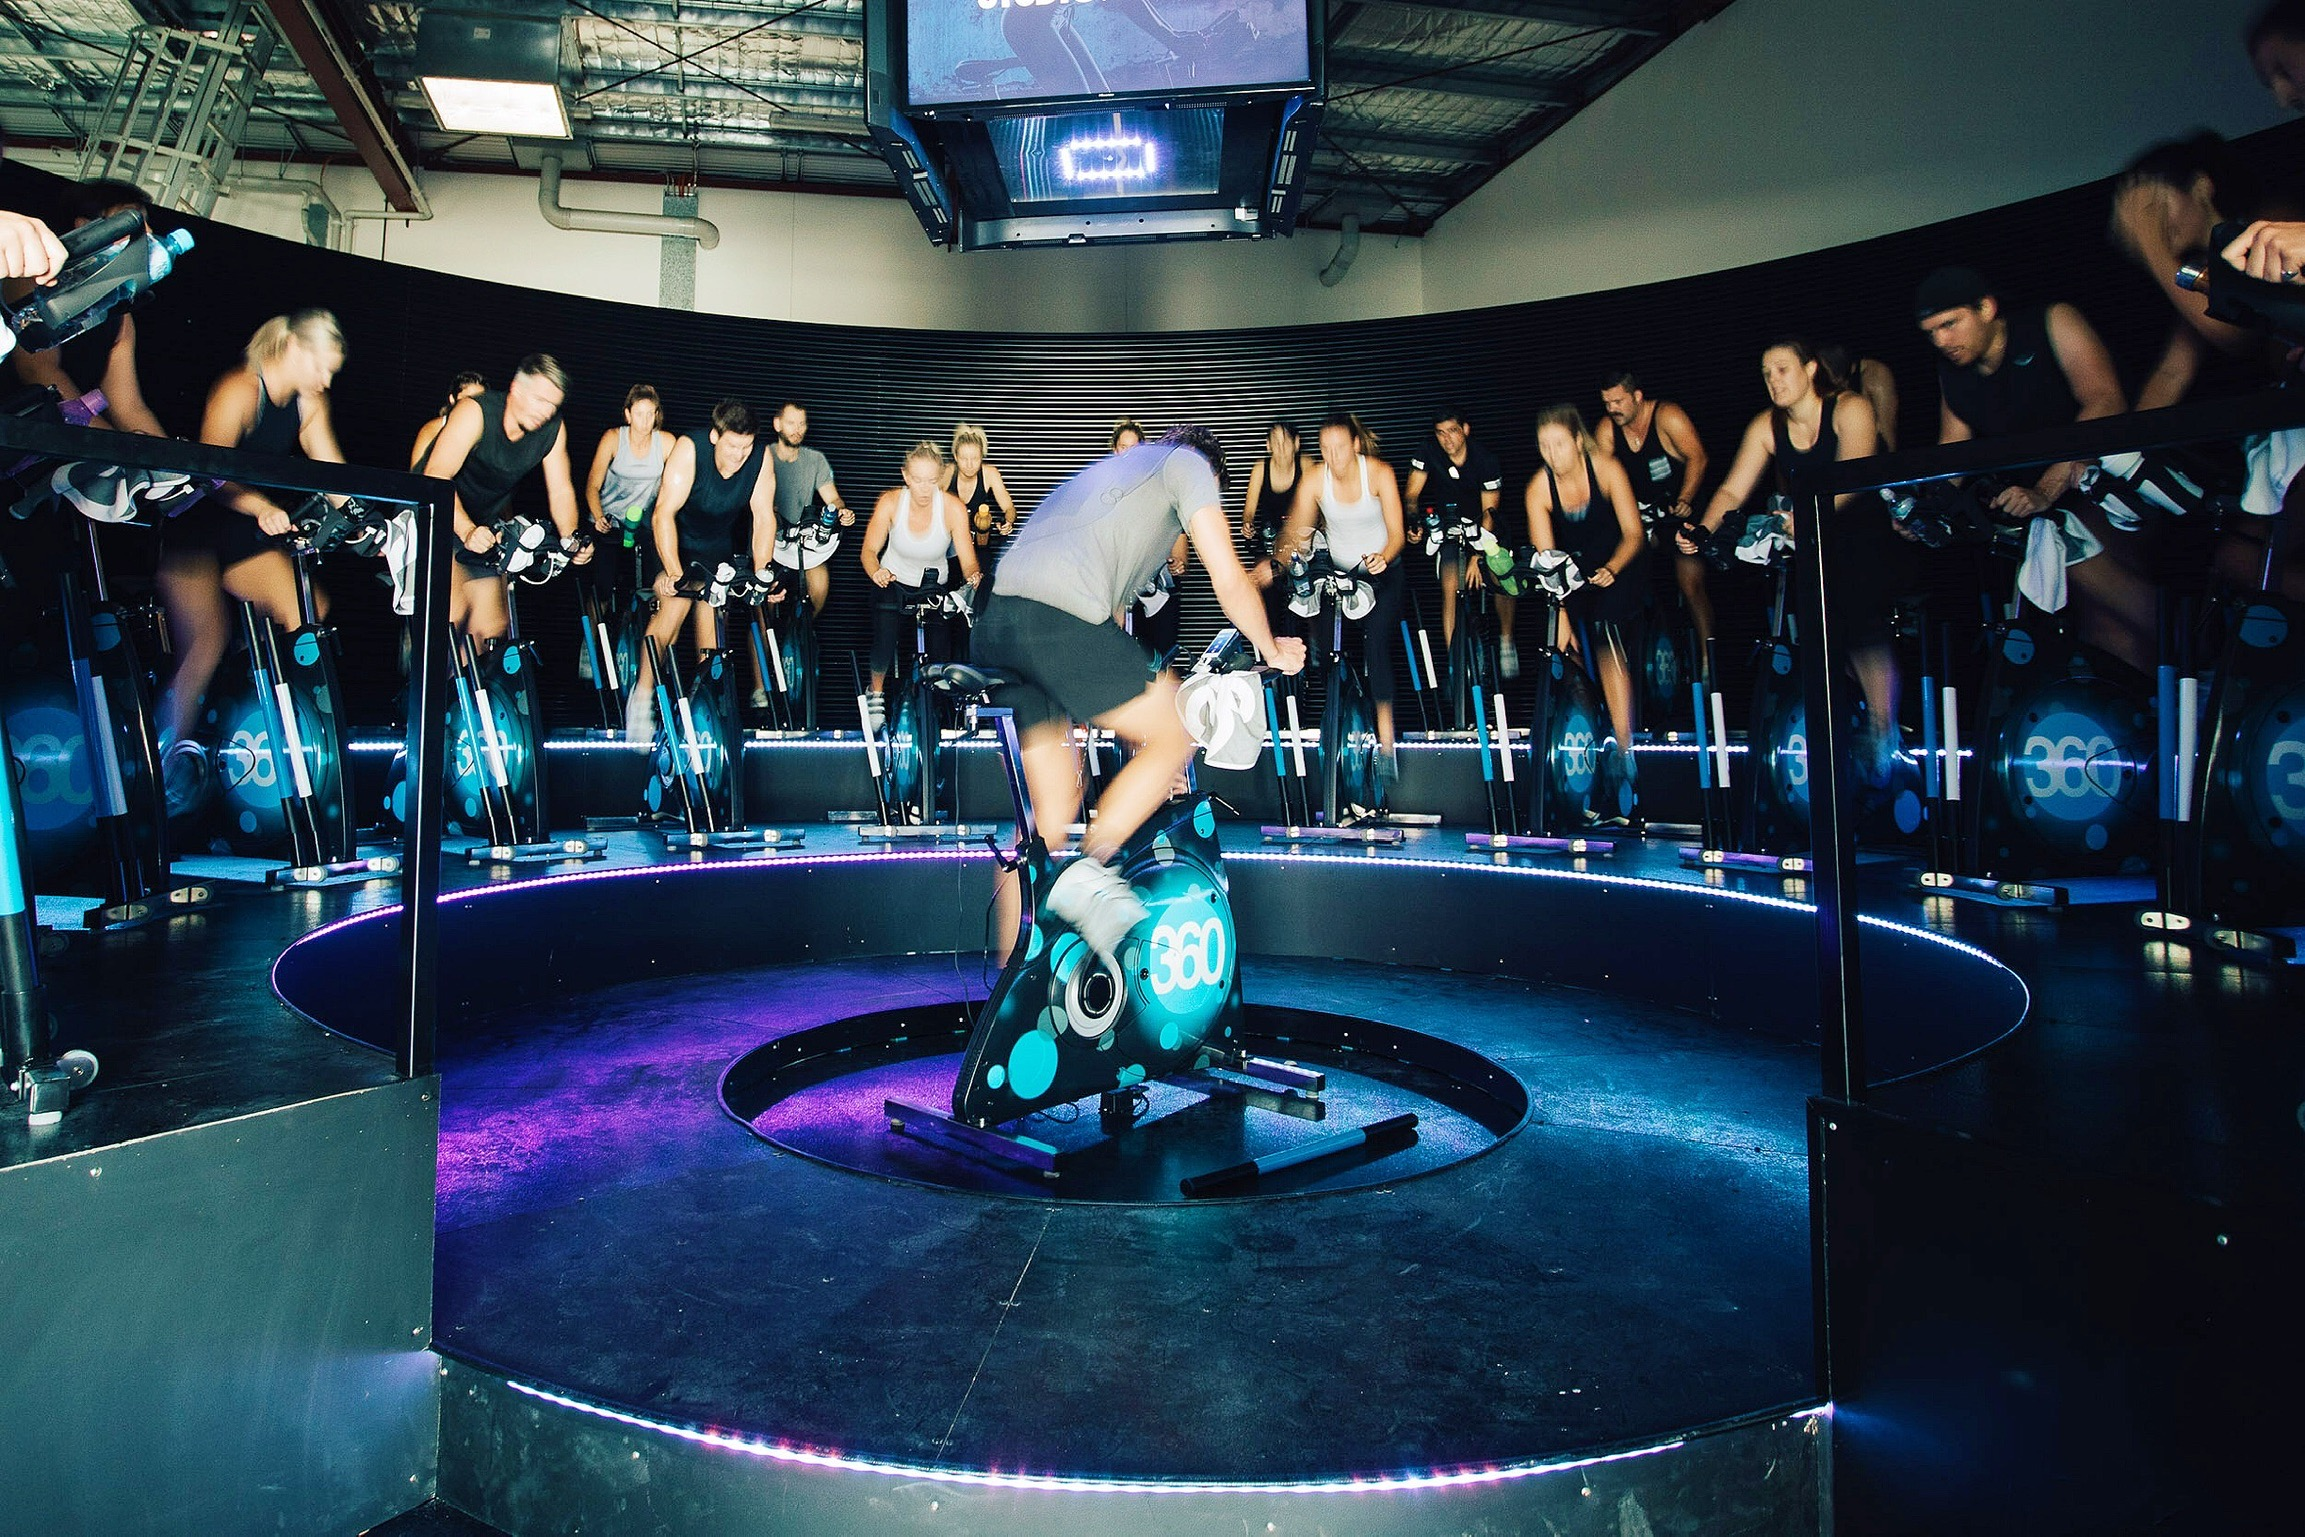 WIN a 6 month Studio360 Cycle membership for you and a friend